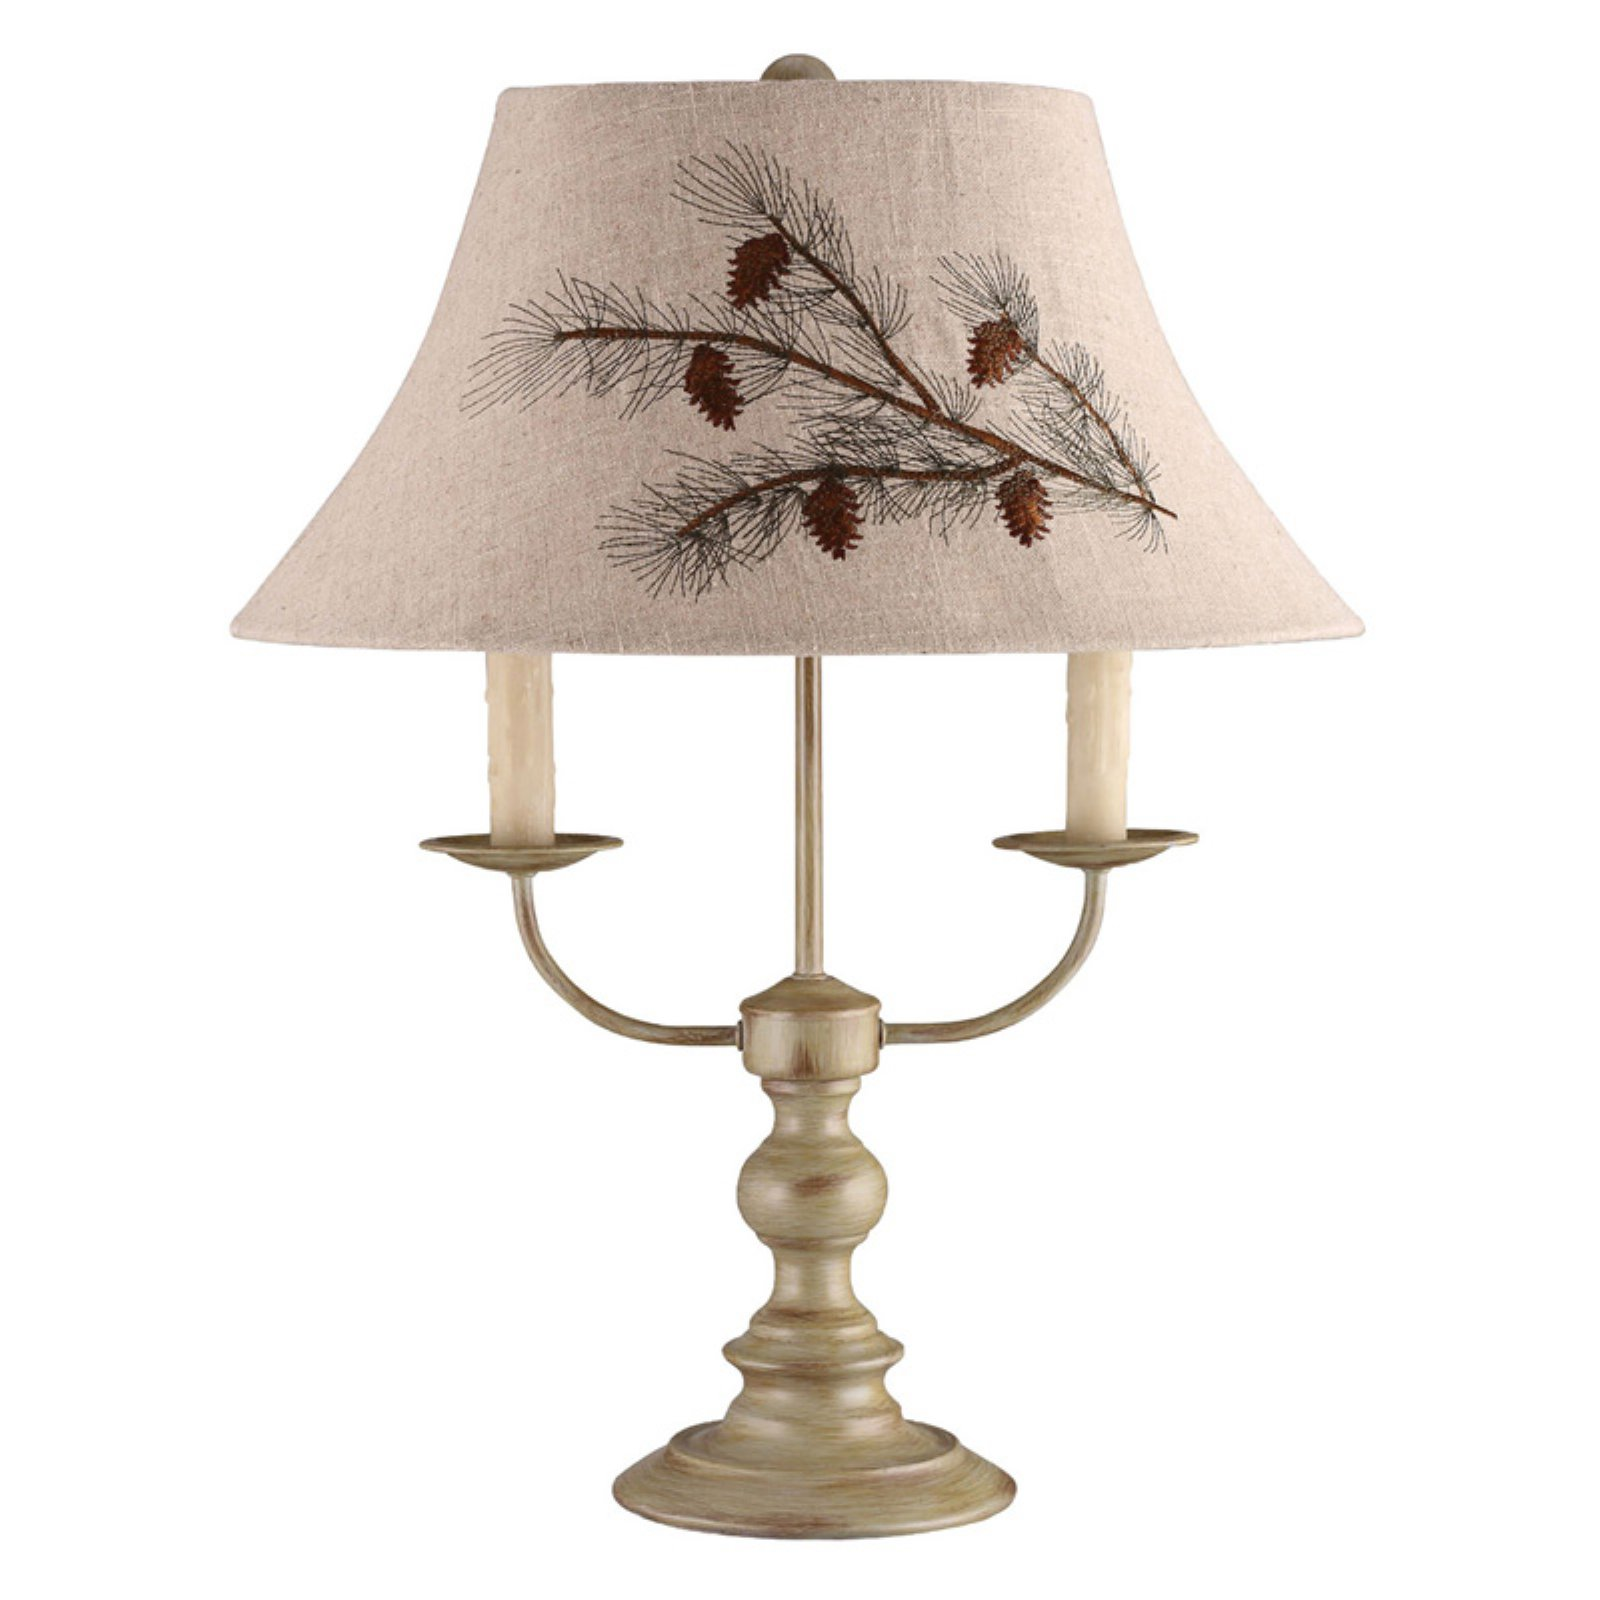 Image of A Homestead Shoppe Bayfield Table Lamp - Pinecone Shade